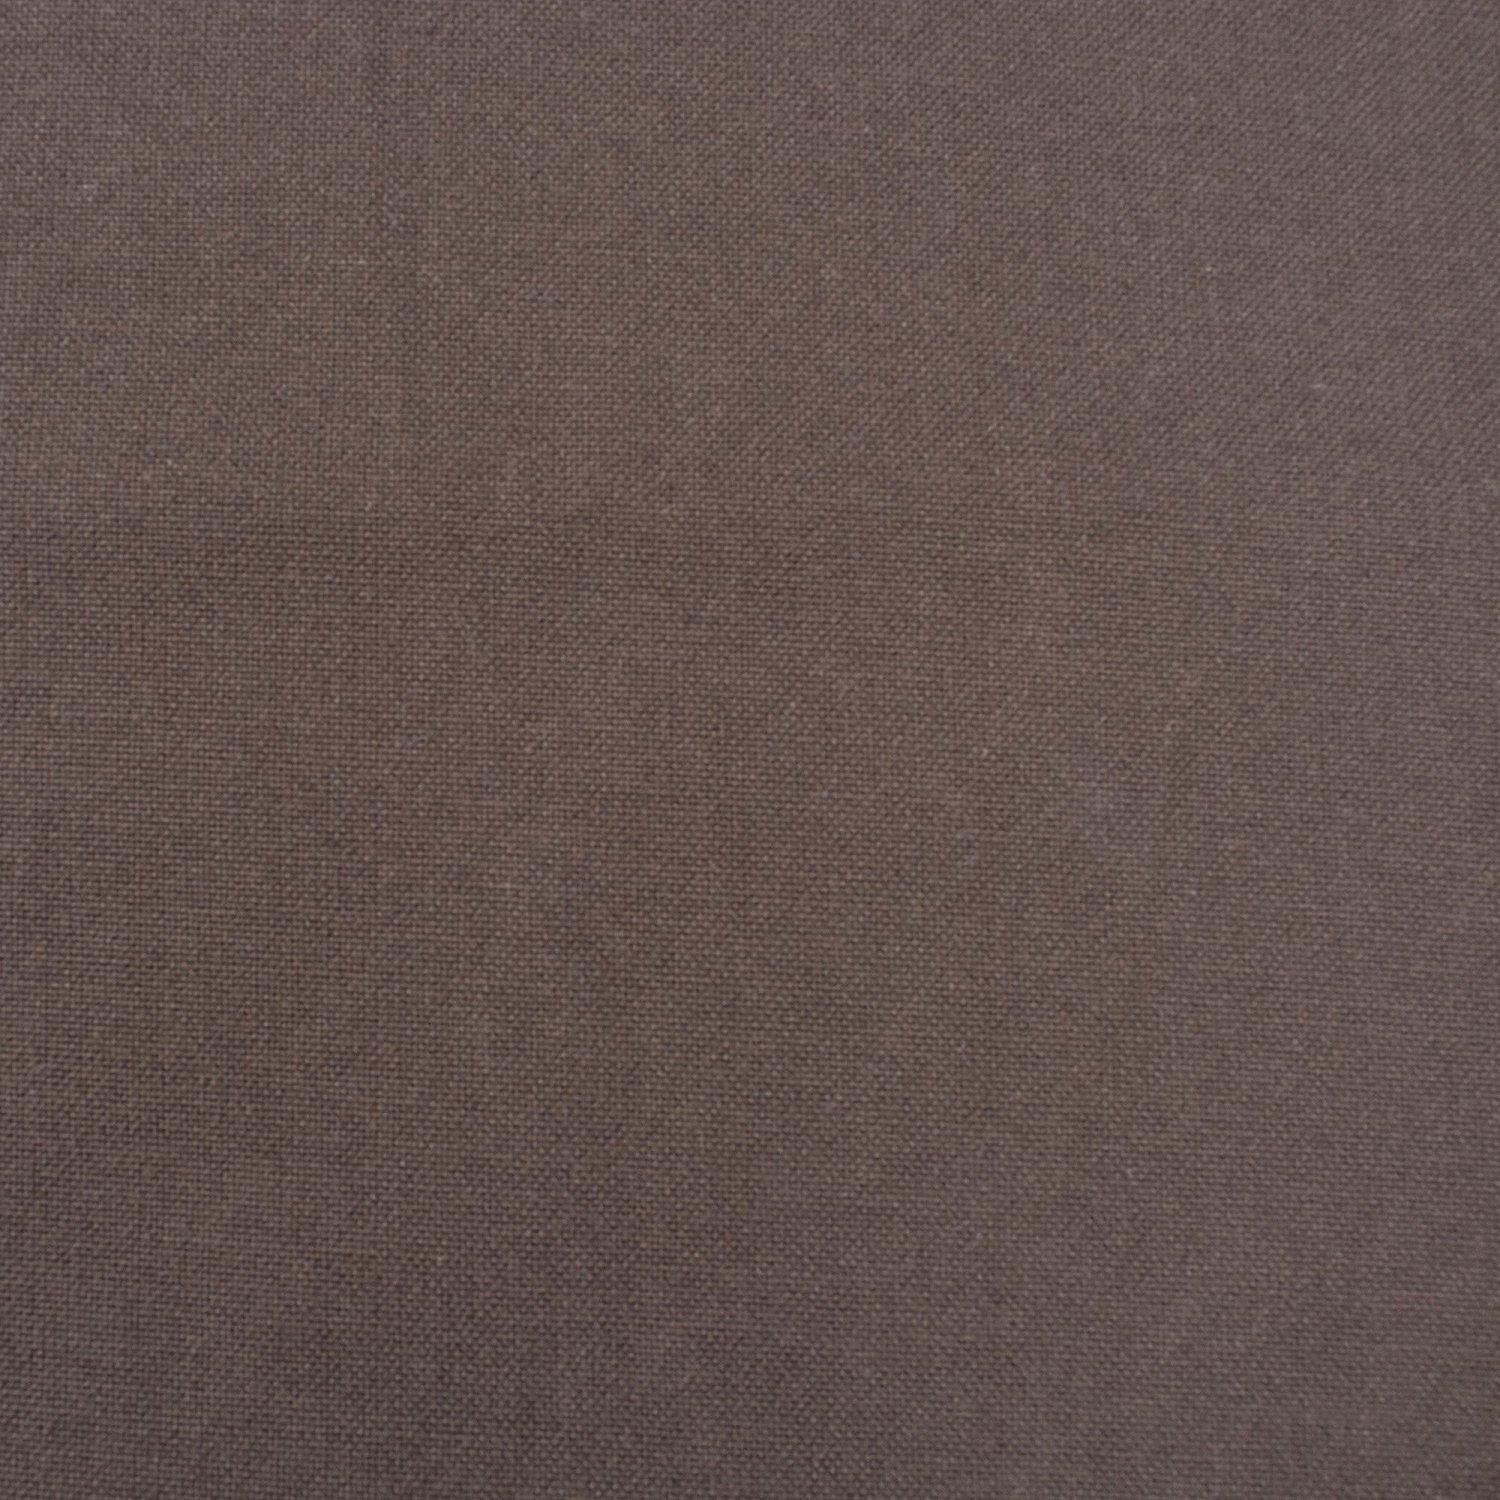 DII 100% Cotton Cloth Napkins, Oversized 20x20'' Dinner Napkins, For Basic Everyday Use, Banquets, Weddings, Events, or Family Gatherings - Set of 6, Dark Brown by DII (Image #2)